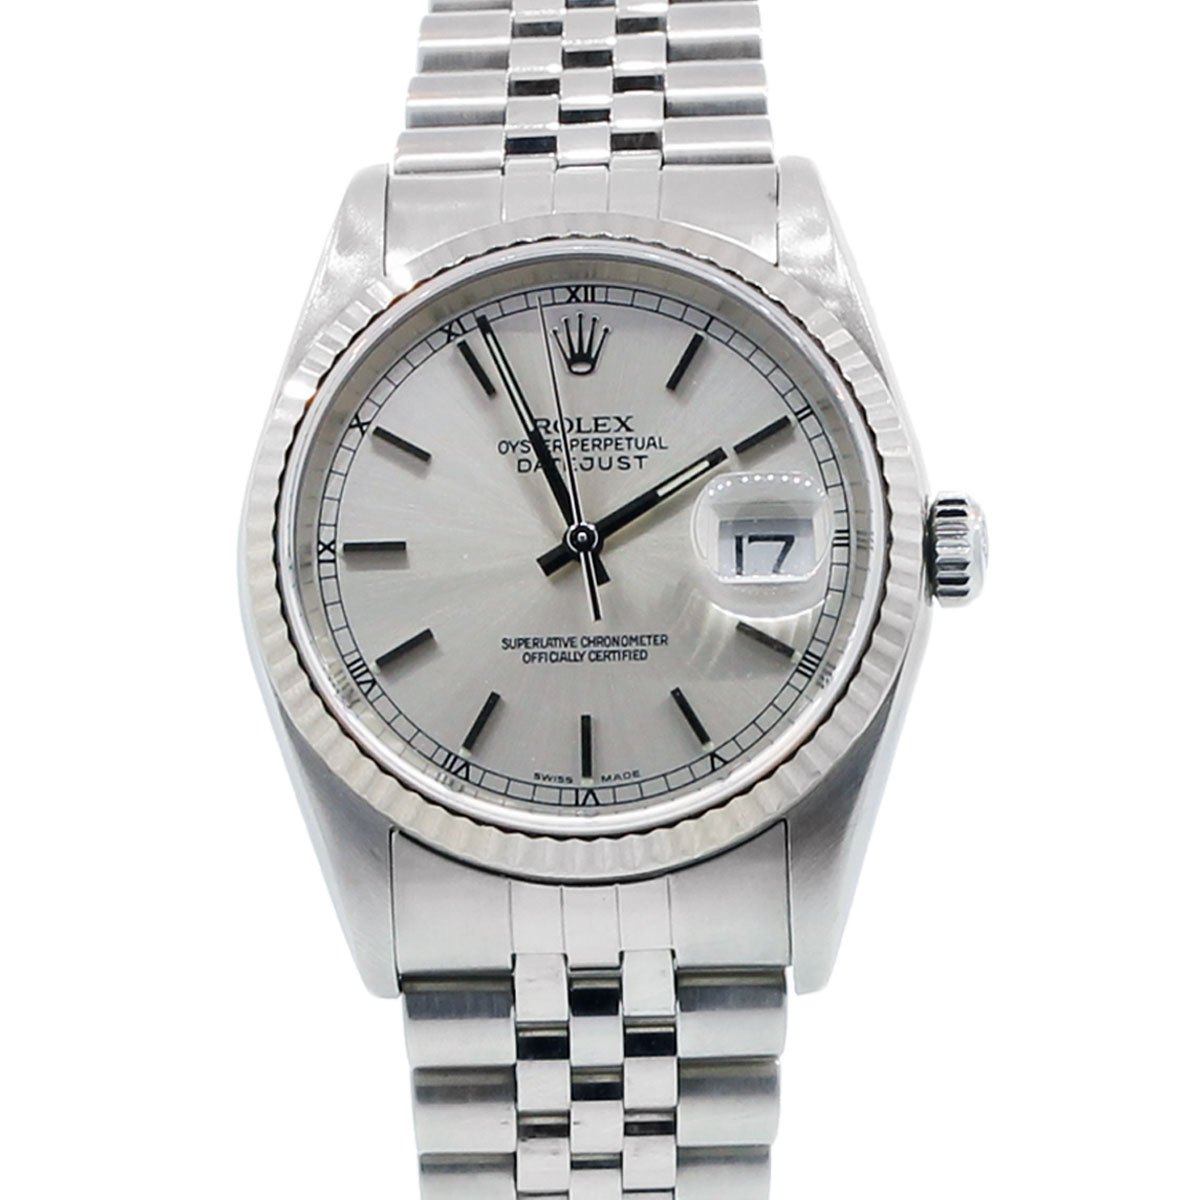 You are viewing this Rolex Datejust Oyster Perpetual 16234 Jubilee Gents Watch!